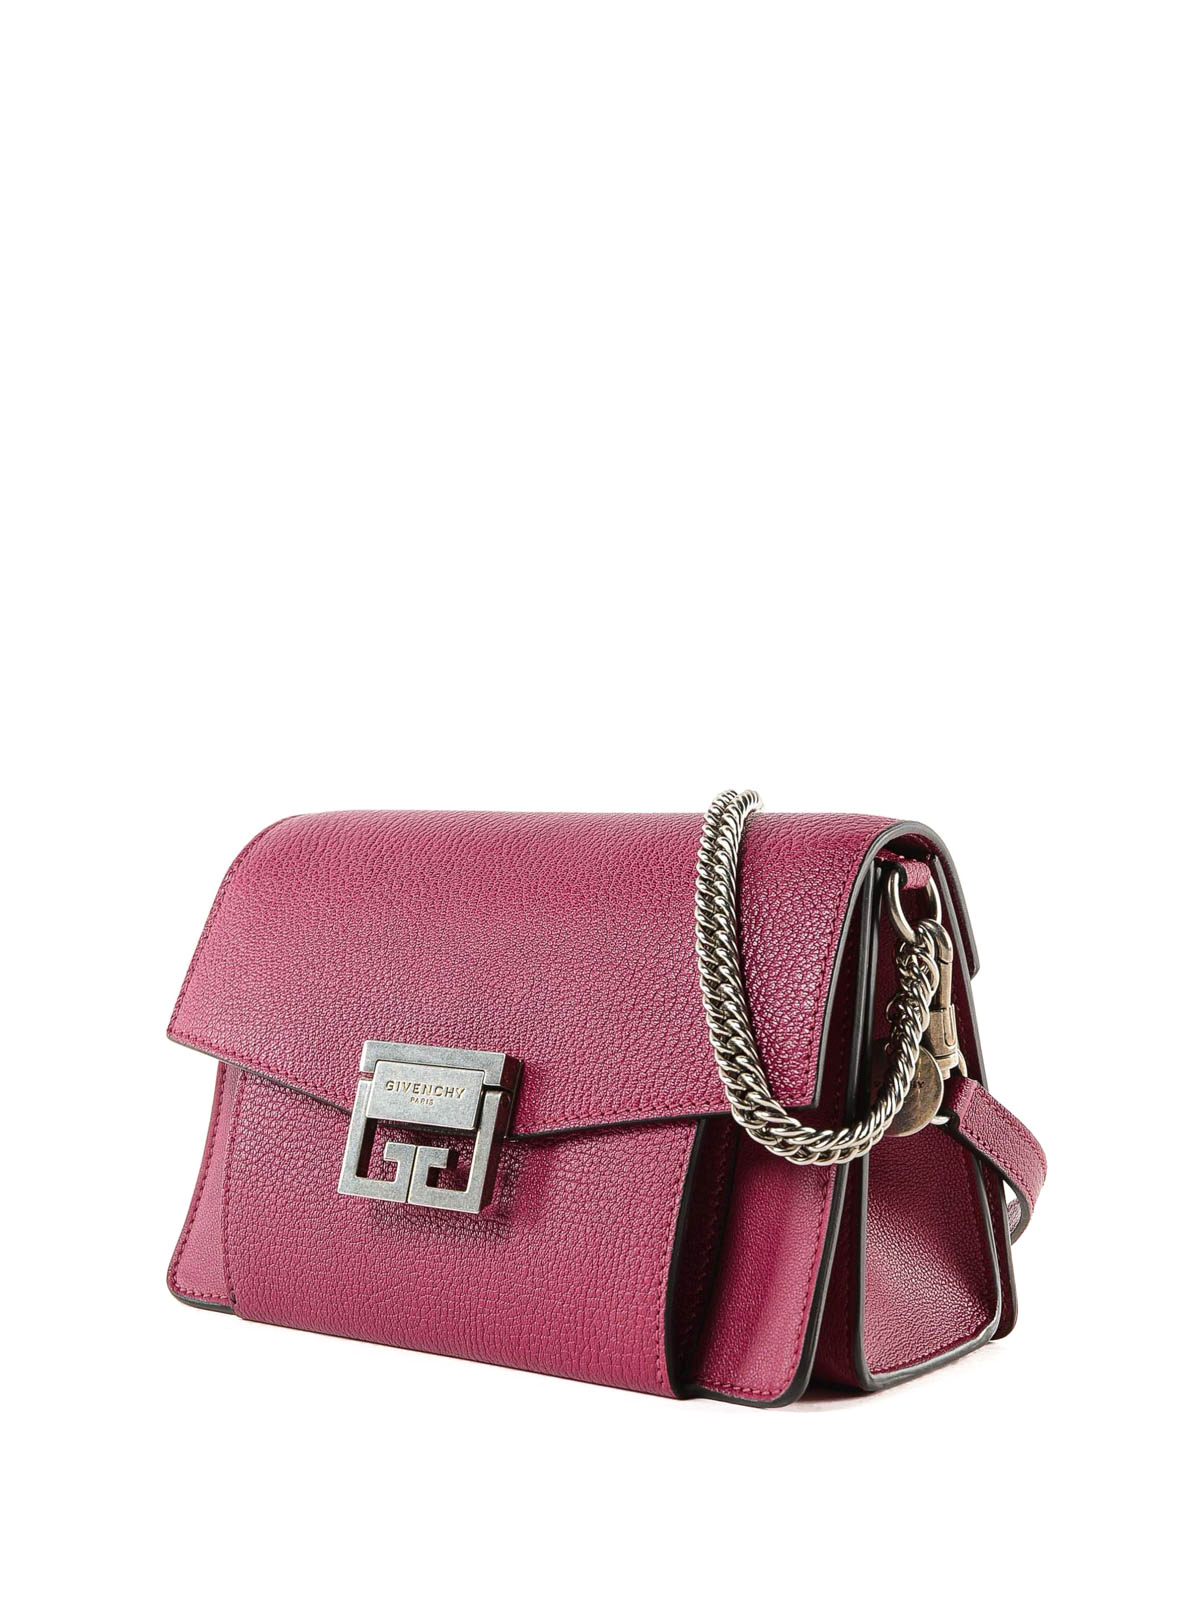 GIVENCHY  cross body bags online - GV3 fuchsia leather small bag 7612f735bbeac